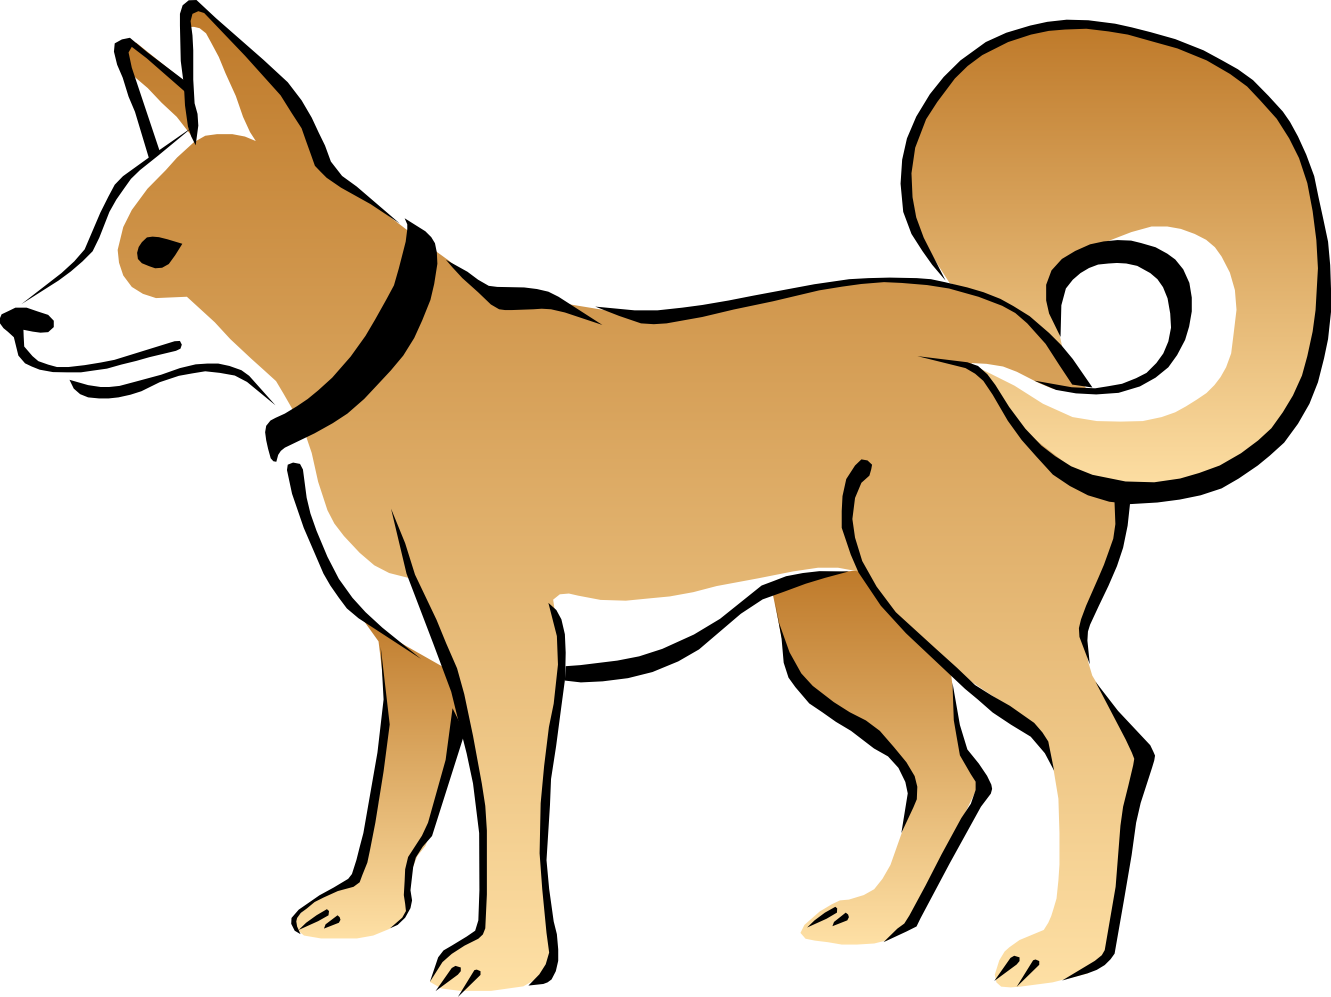 Blue dog bone clipart picture transparent stock Dog png image, dogs, puppy pictures free download picture transparent stock